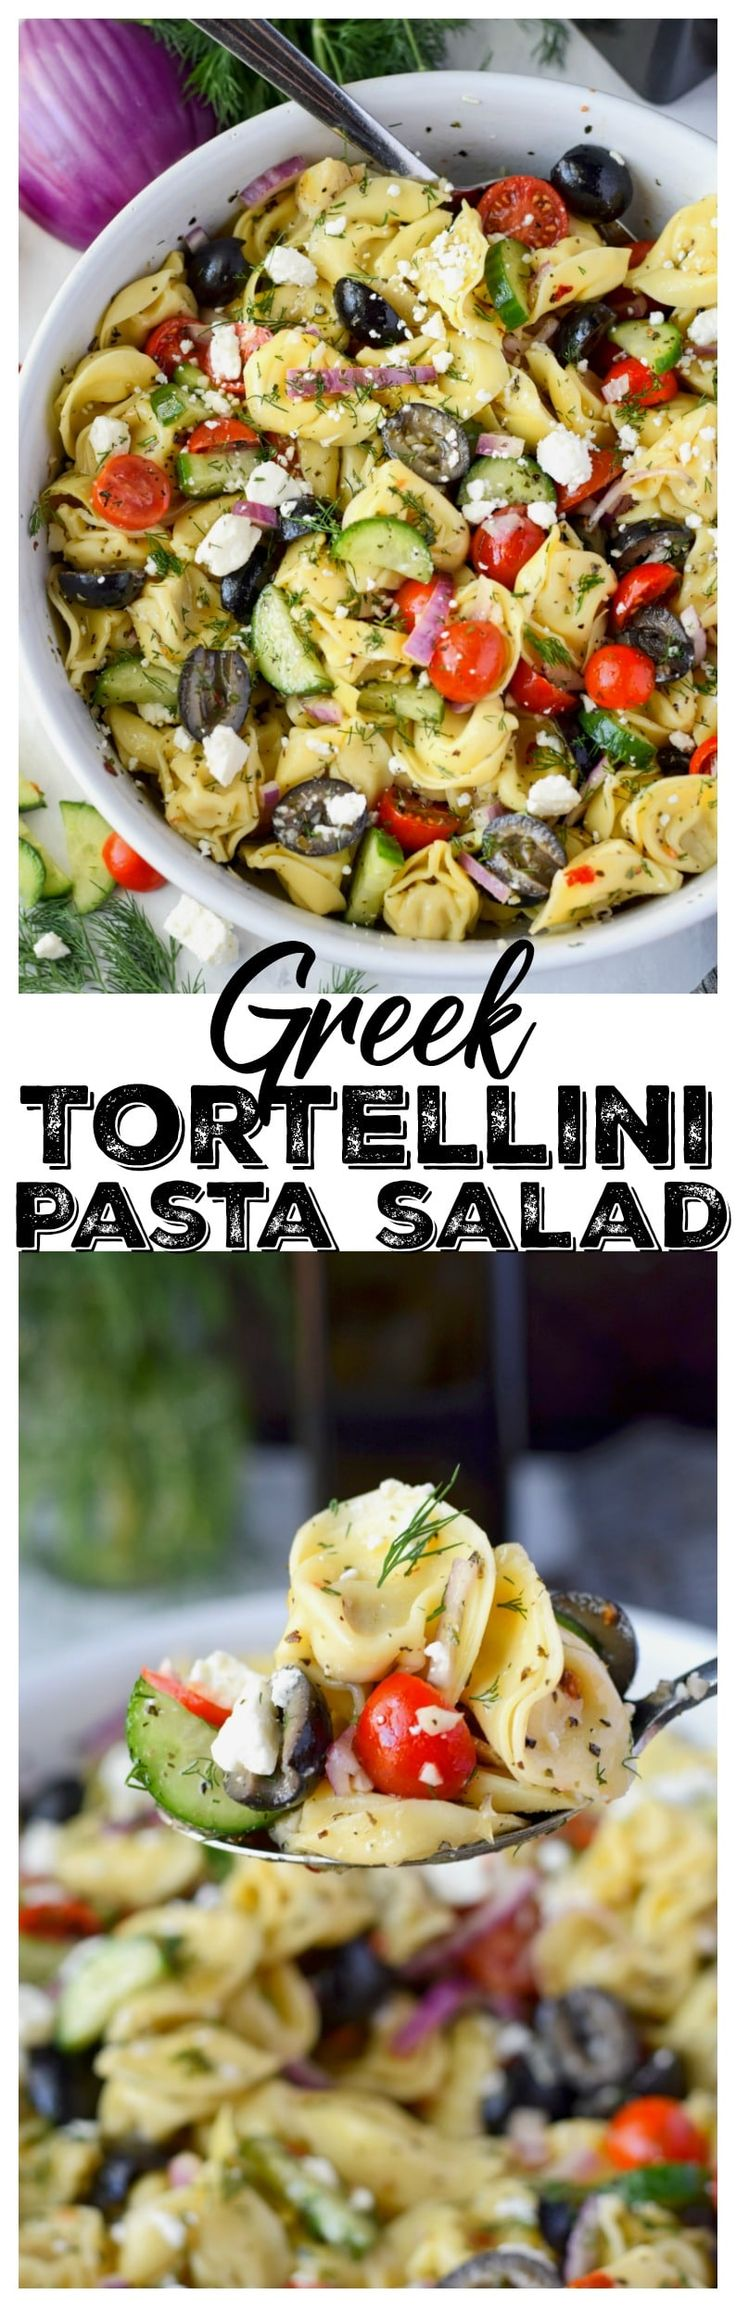 This Greek tortellini pasta salad recipe has plenty of veggies, and the homemade dressing has tons of flavor. This salad even gets better as it sits and the pasta soaks up some of that dressing. It's quick and easy and can be made ahead, and an overall crowd pleaser! #tortellinisalad #pastasalad #sidedish #potluck  via @butteryobiscuit